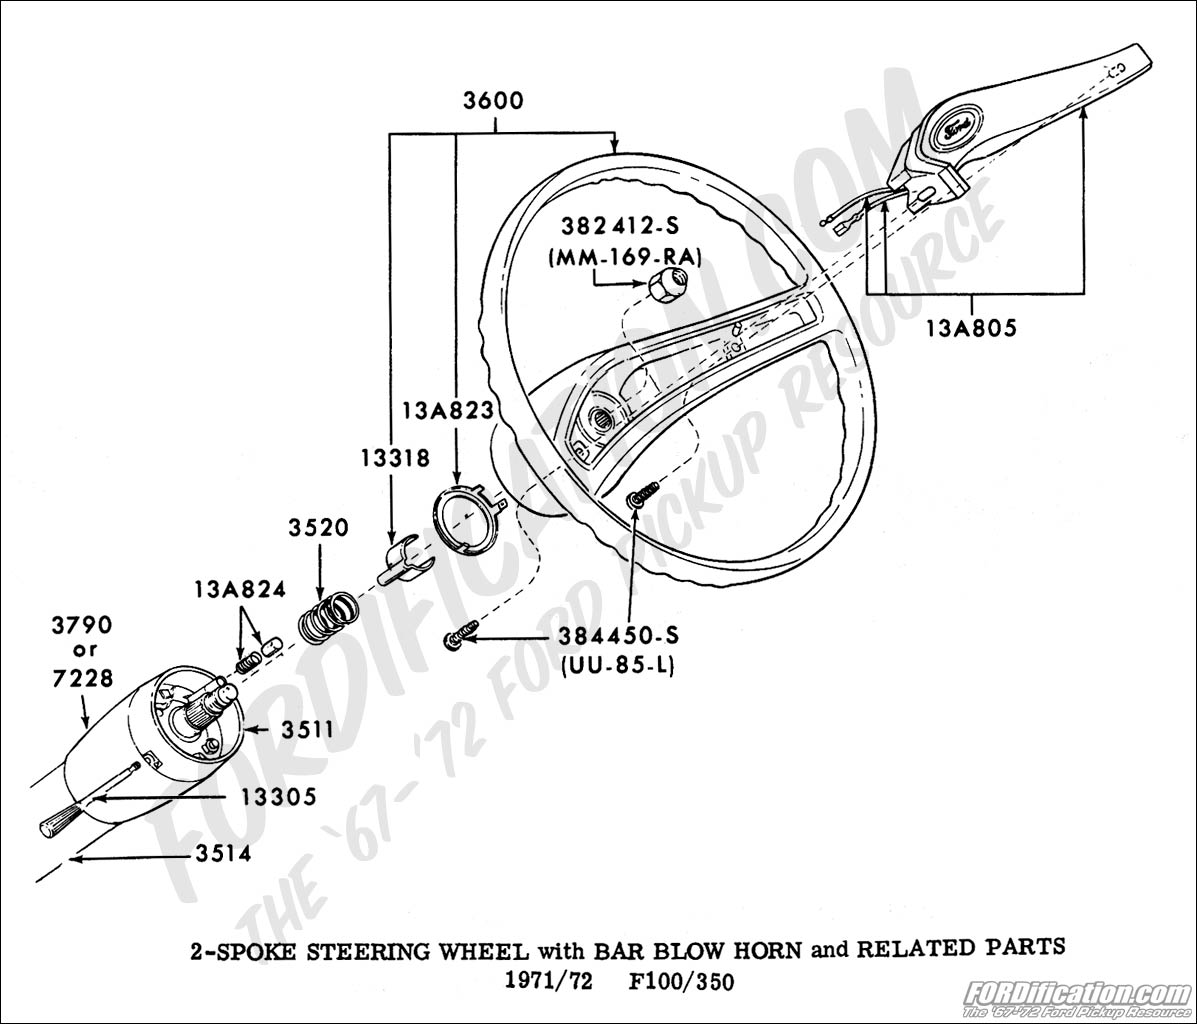 2000 Ford F 250 Trailer Ke Wiring Diagram additionally 72 F100 Wiring Diagrams furthermore Par Car Gas Wiring Diagram as well Auto Security System Wiring Diagram also 04 F250 Fuel Pump Relay Location. on ford mustang starter solenoid wiring diagram